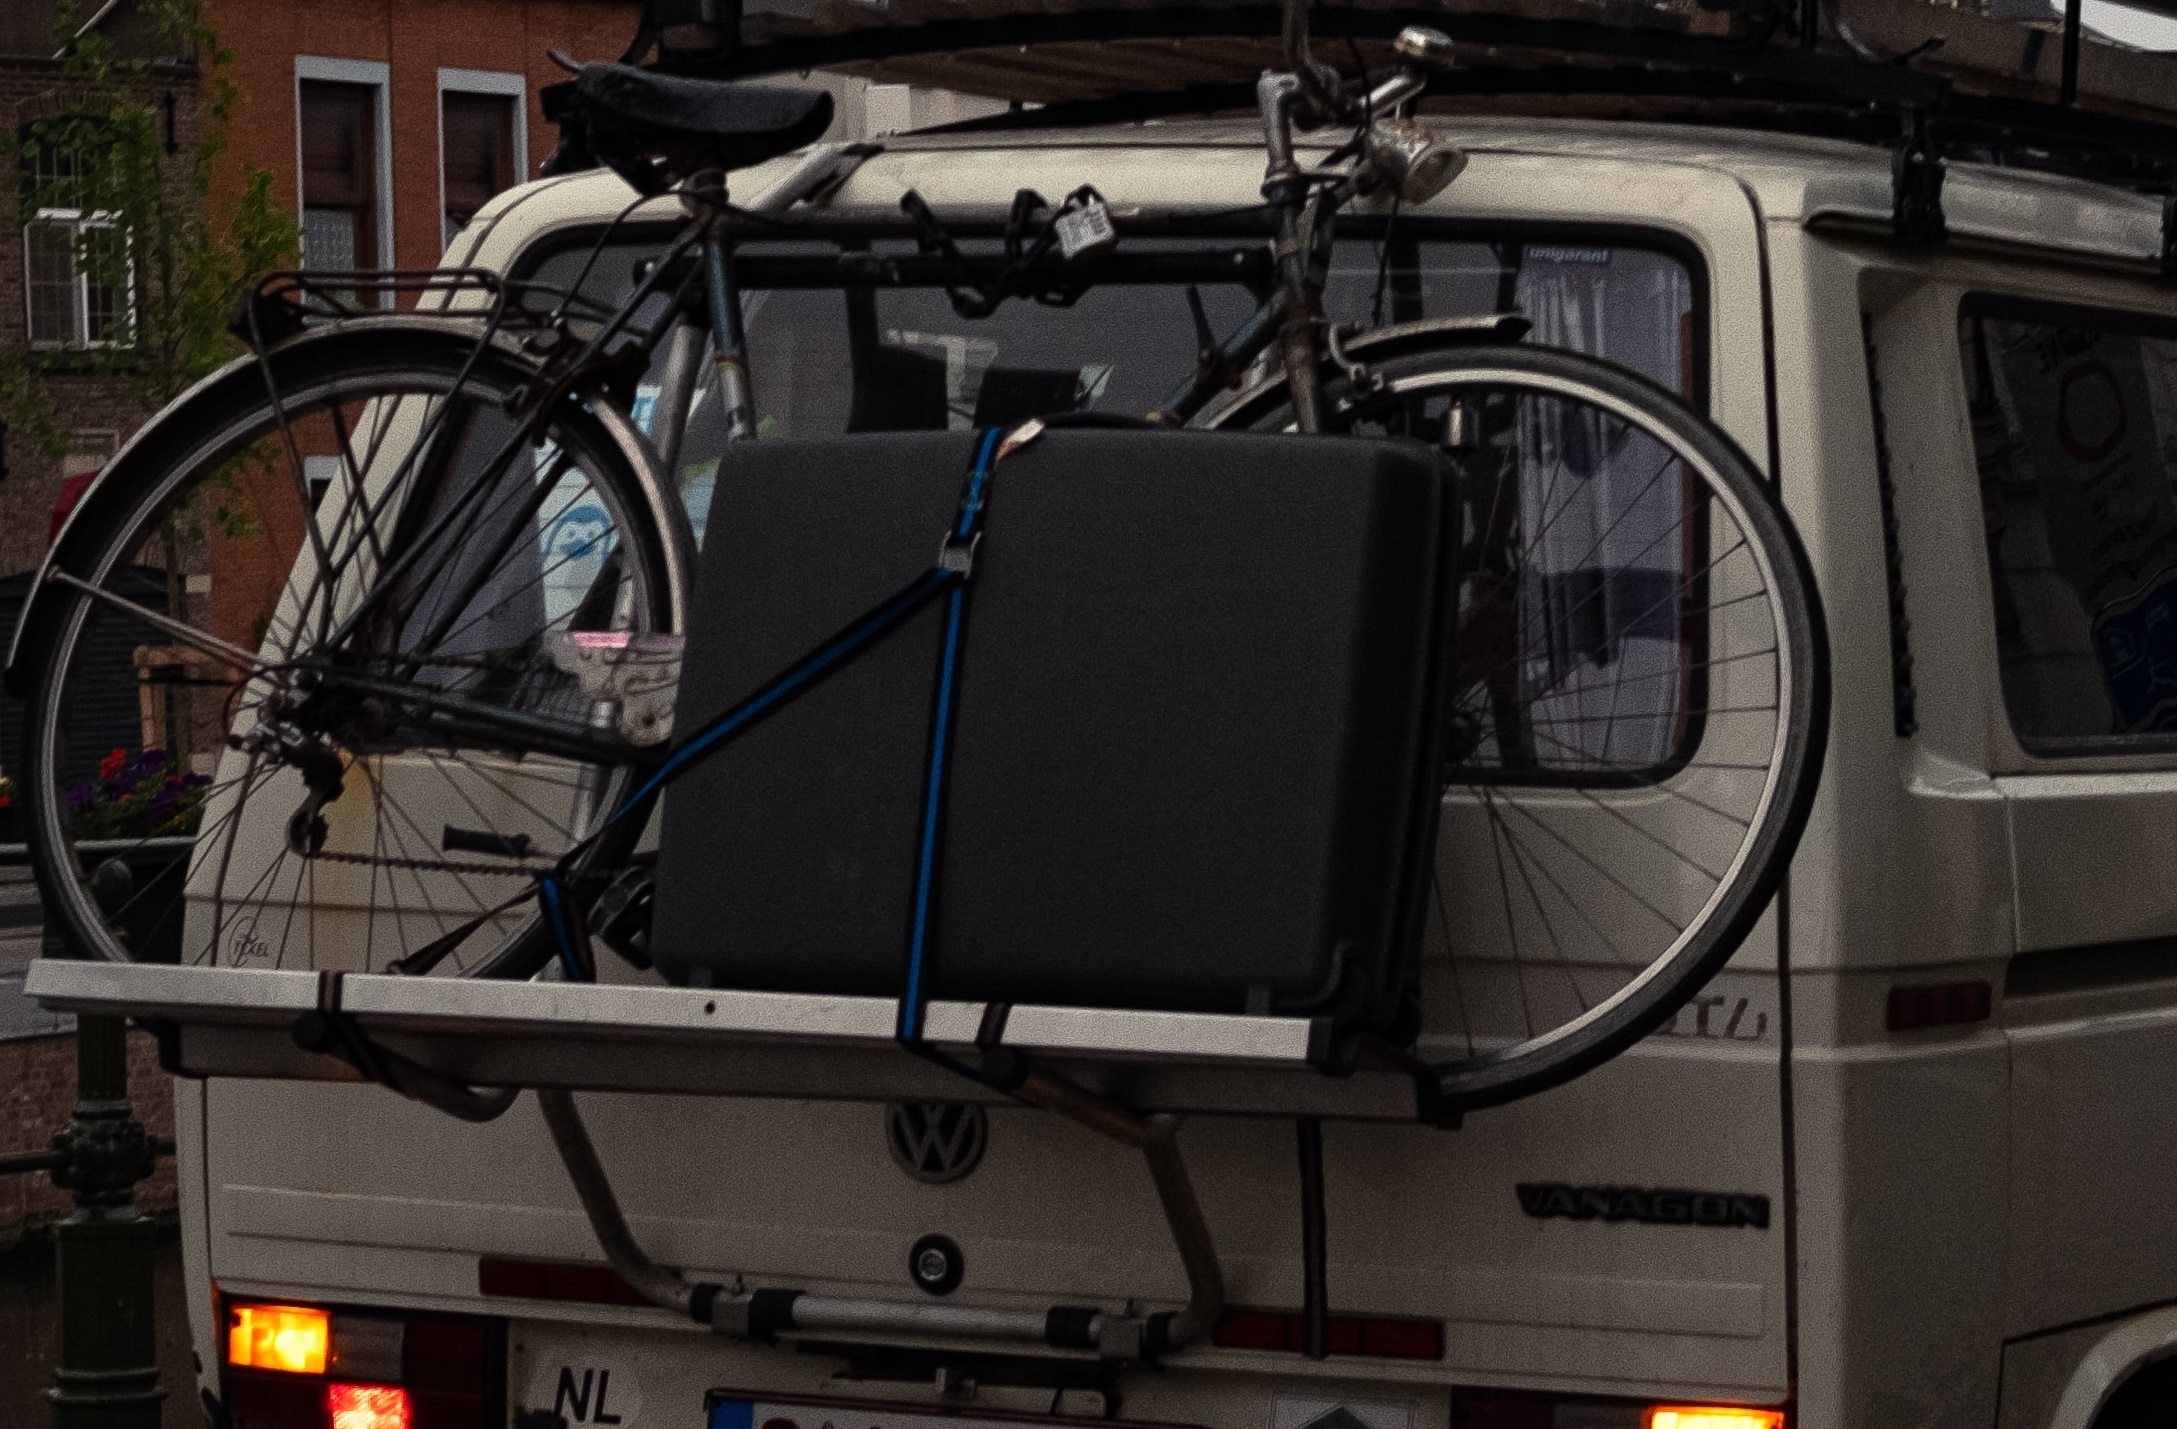 Mountain bike Mounted to Van